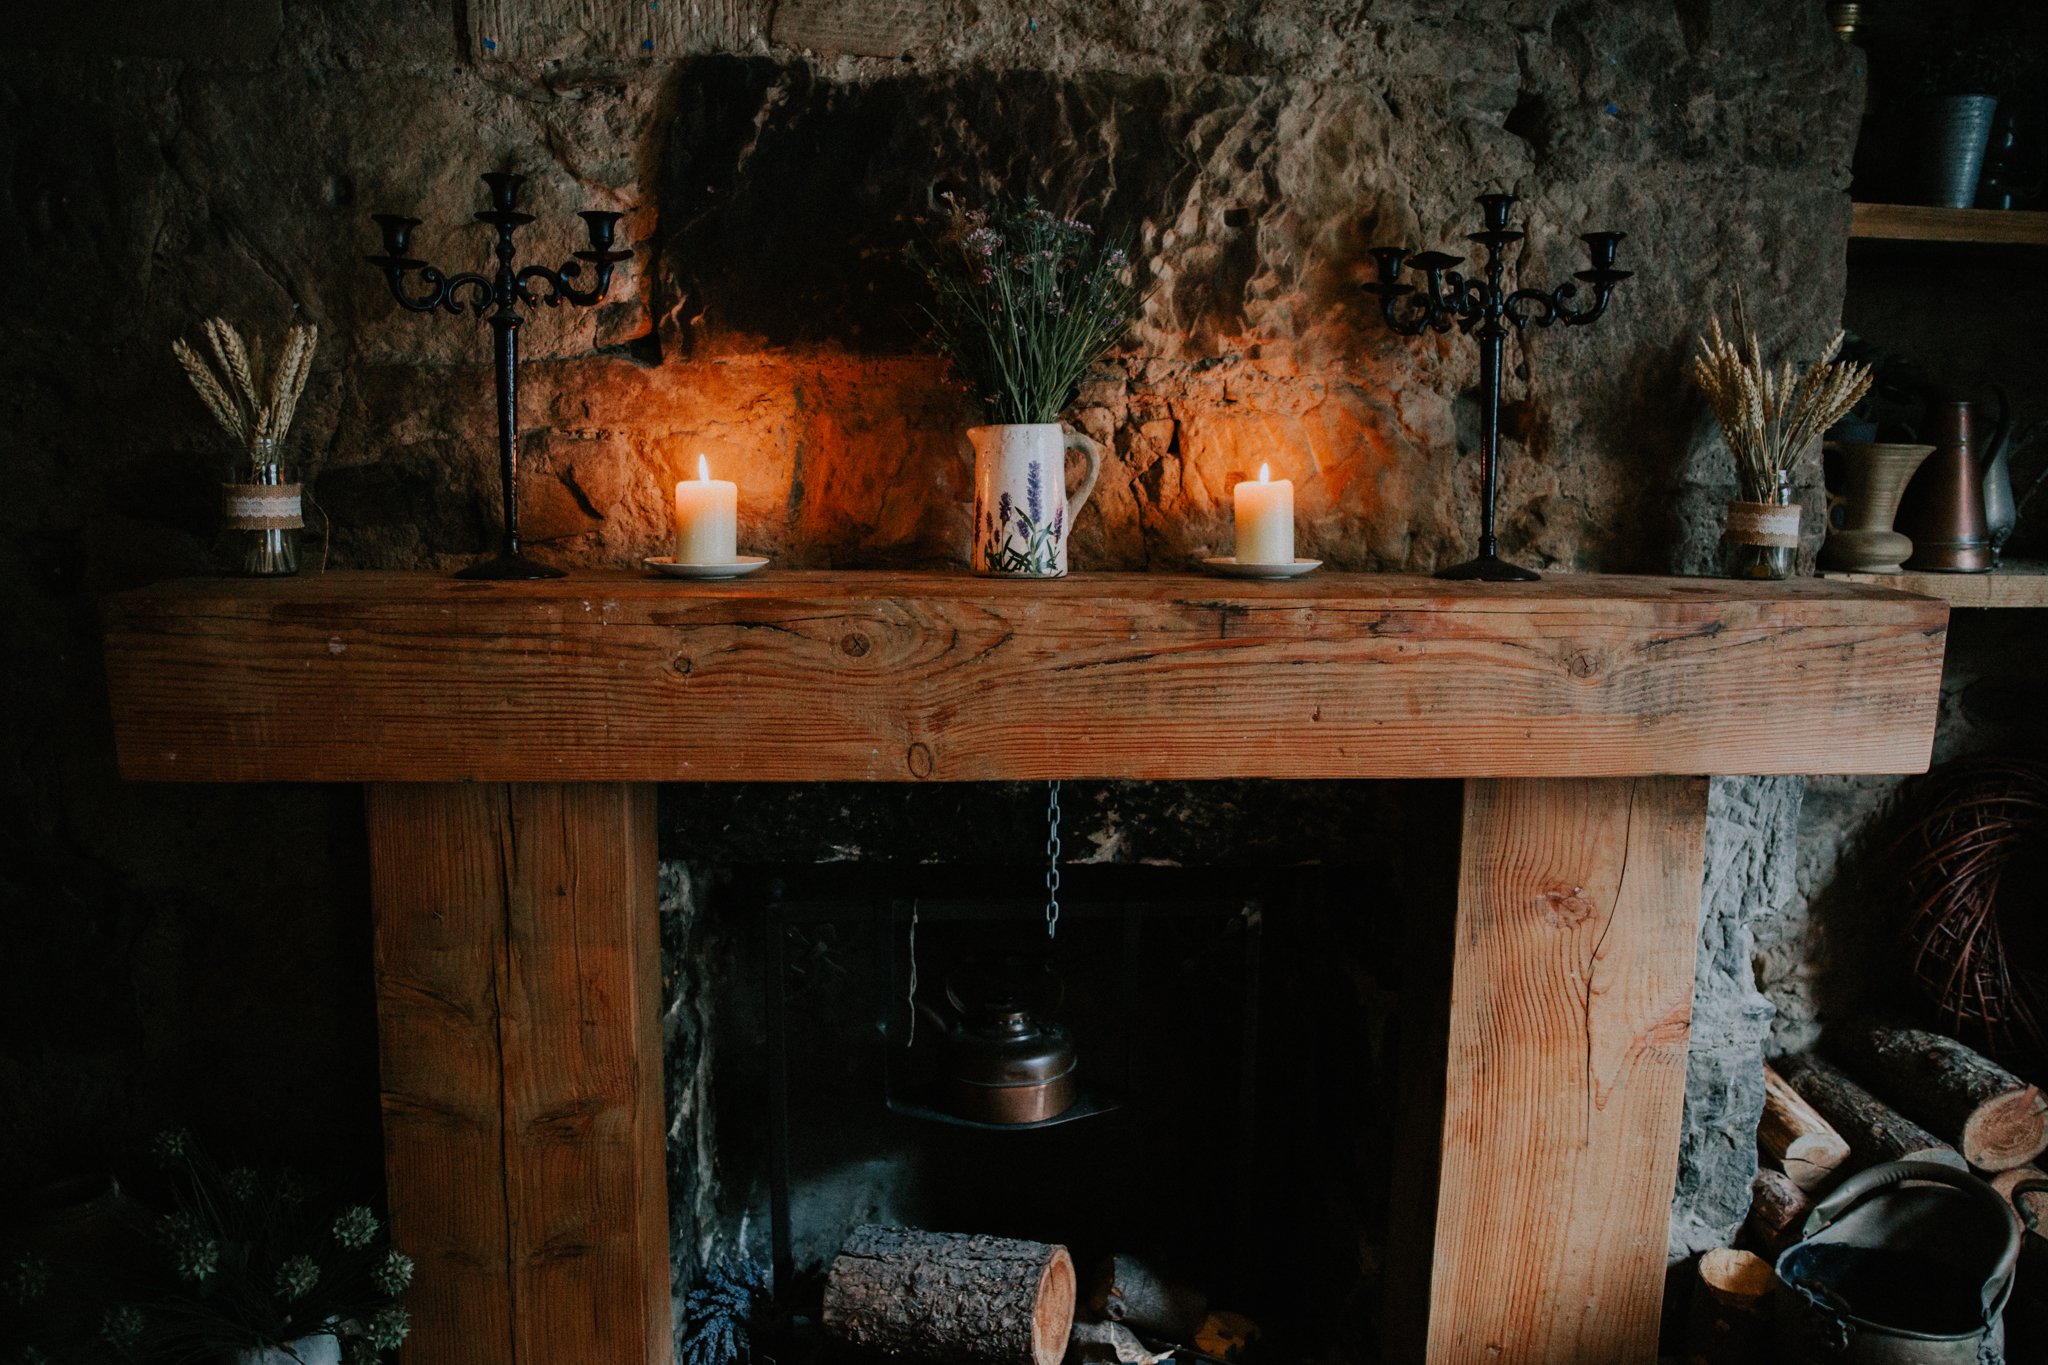 Rustic fire place details at the Bothy restaurant